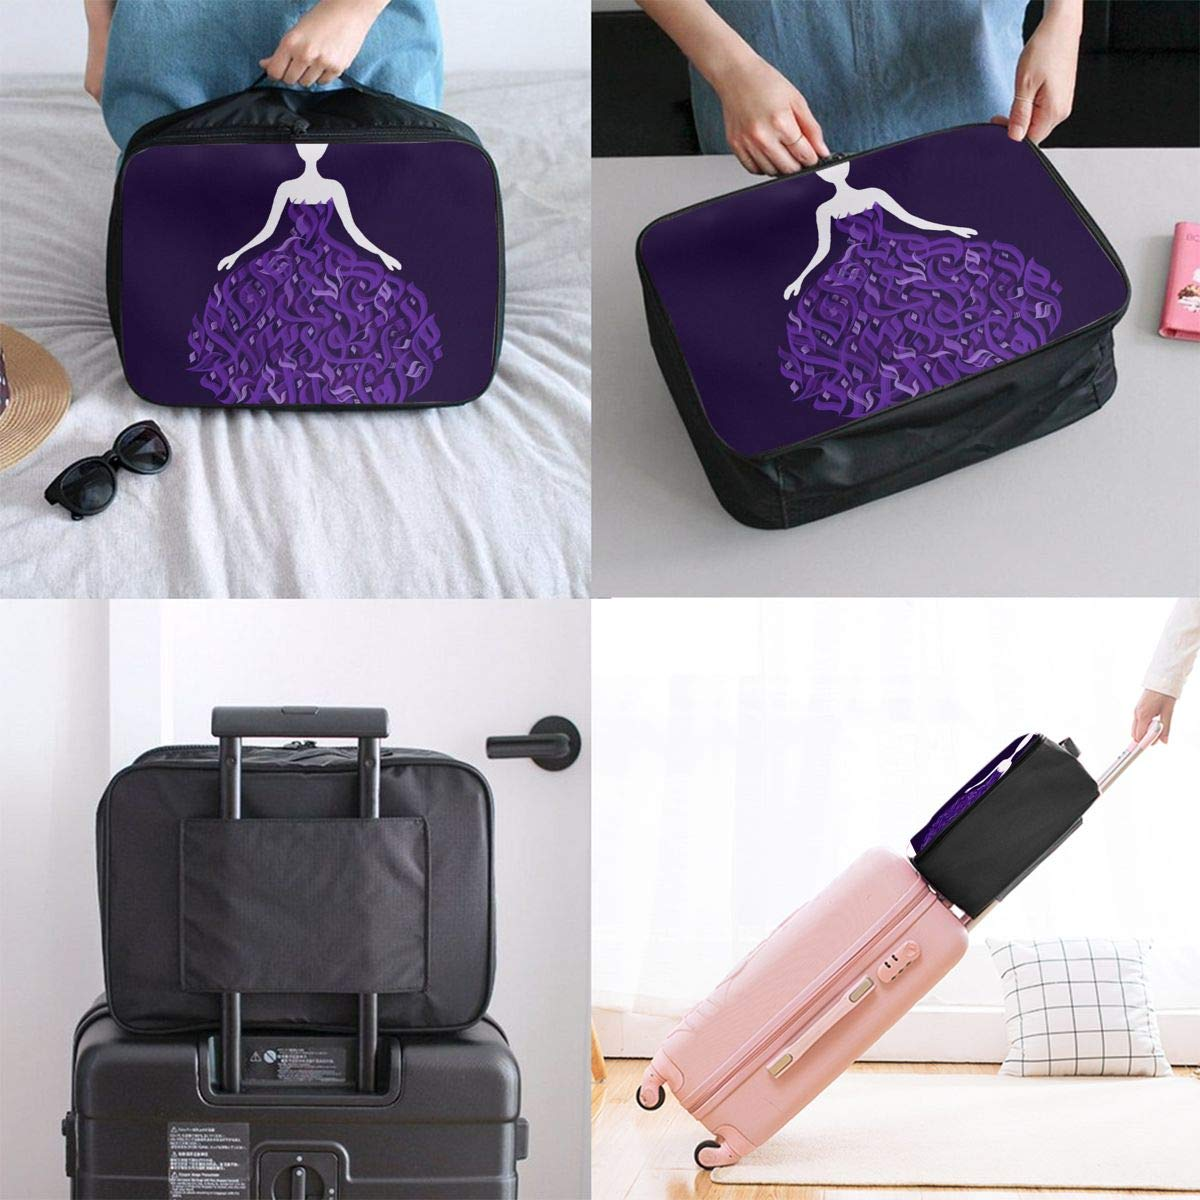 Purple Beauty Arabic Calligraphy Art Customize Casual Portable Travel Bag Suitcase Storage Bag Luggage Packing Tote Bag Trolley Bag